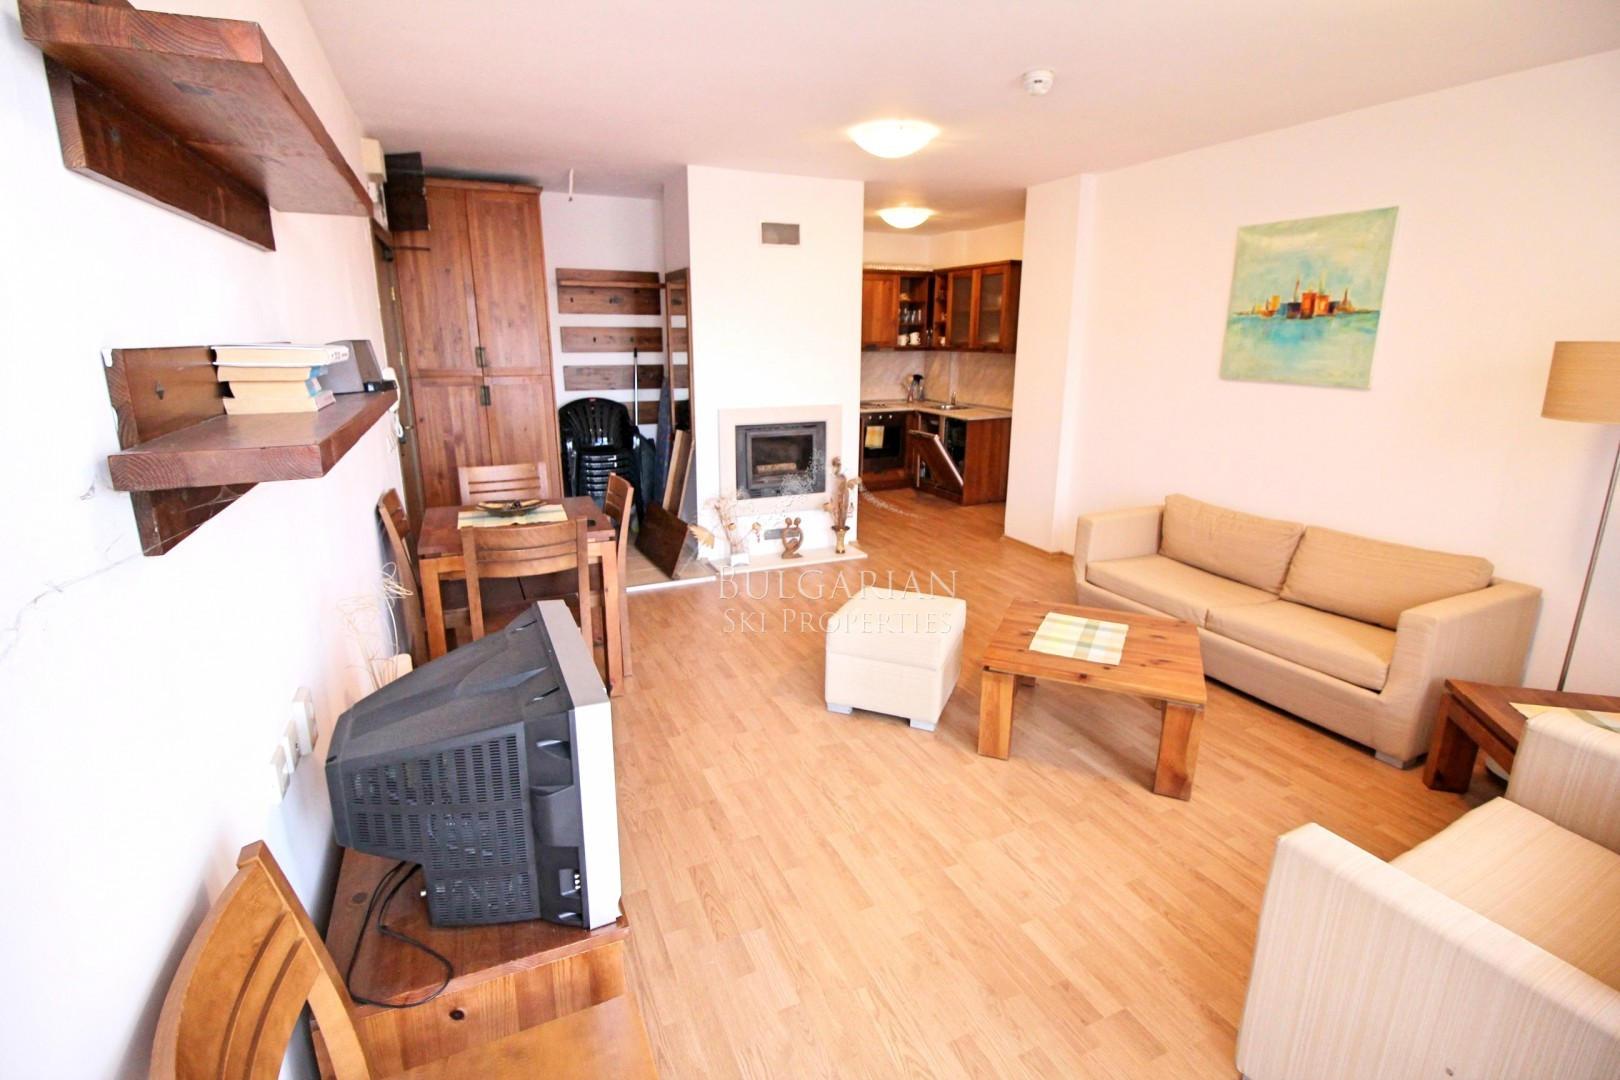 St John Hill, Bansko: spacious one-bedroom apartment for sale